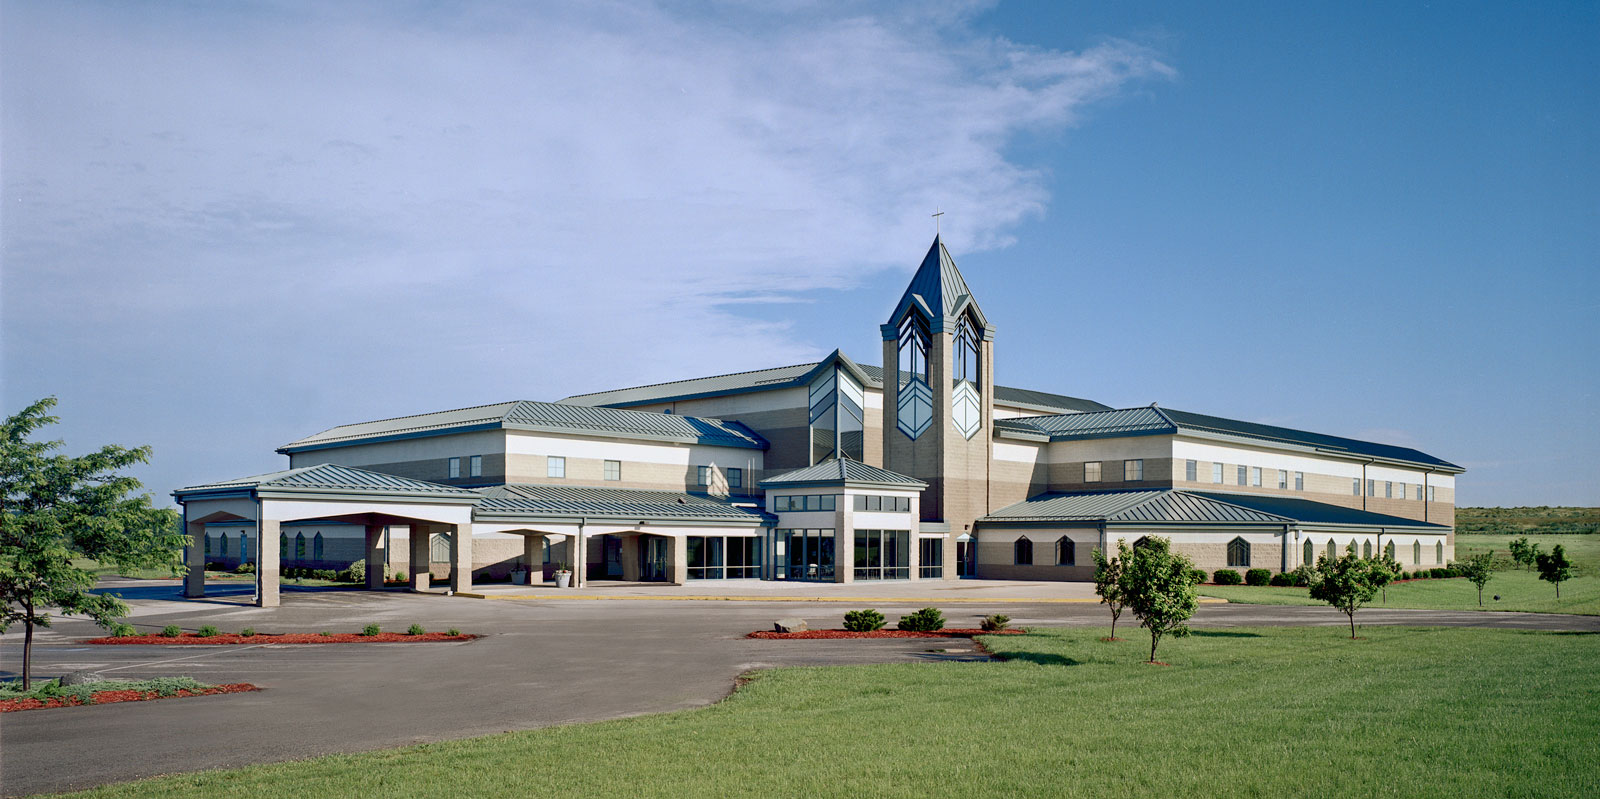 Expansive church with a large modern stoop in the center. A bright blue roof flows over the building and adjoining carport